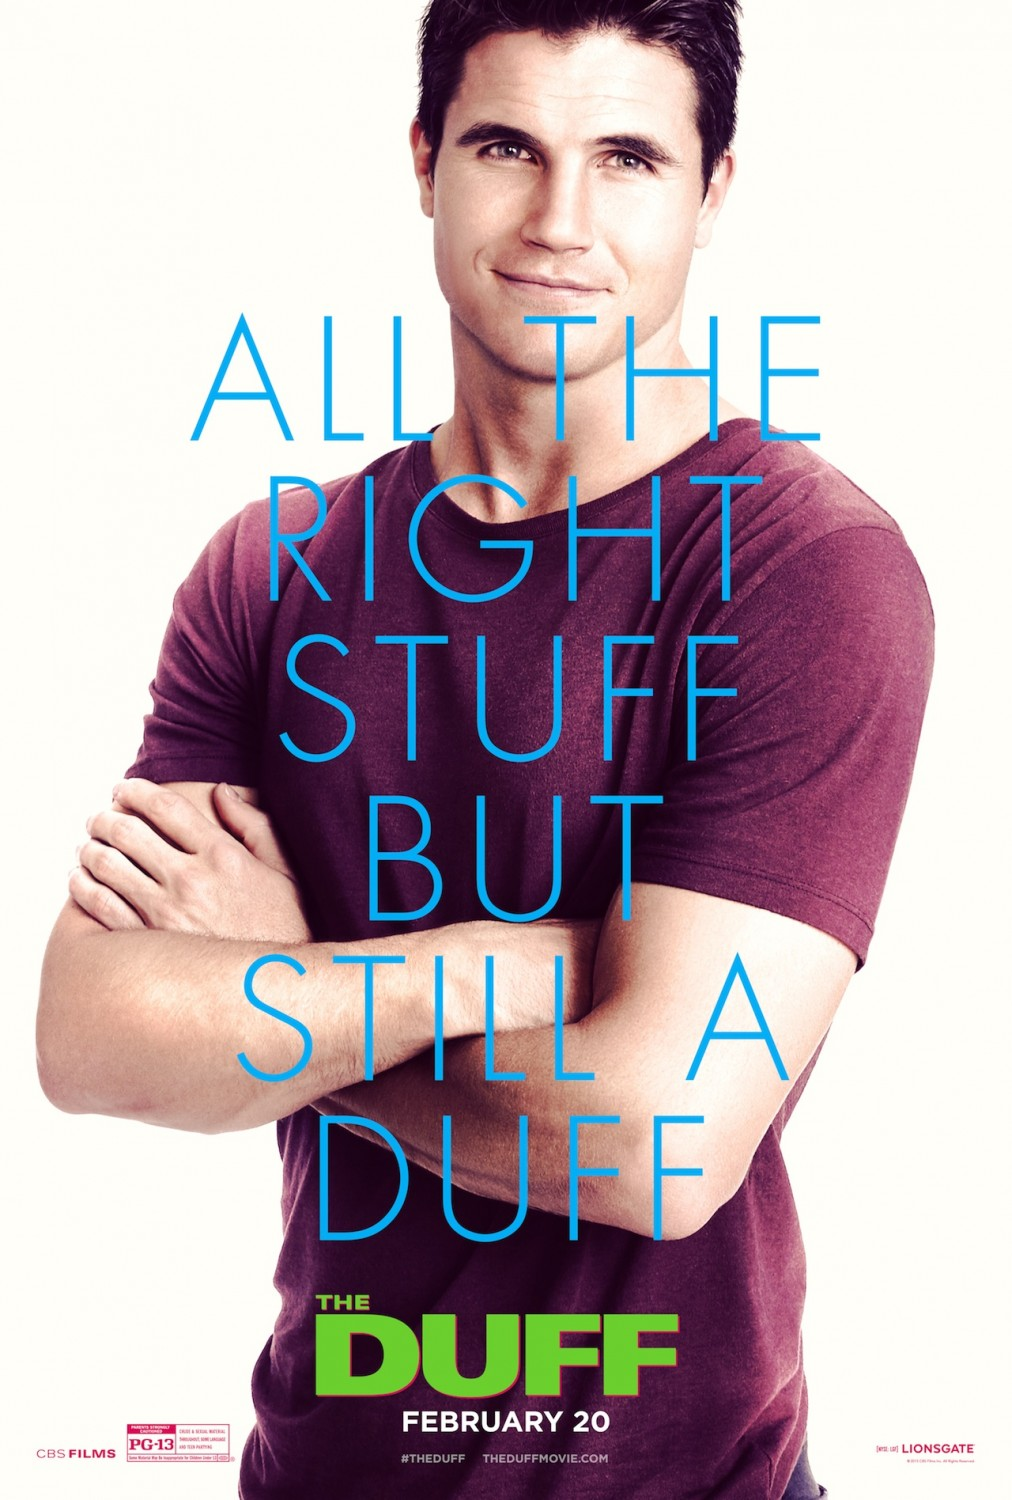 The DUFF-POSTER CHAR-16JANEIRO2014-04